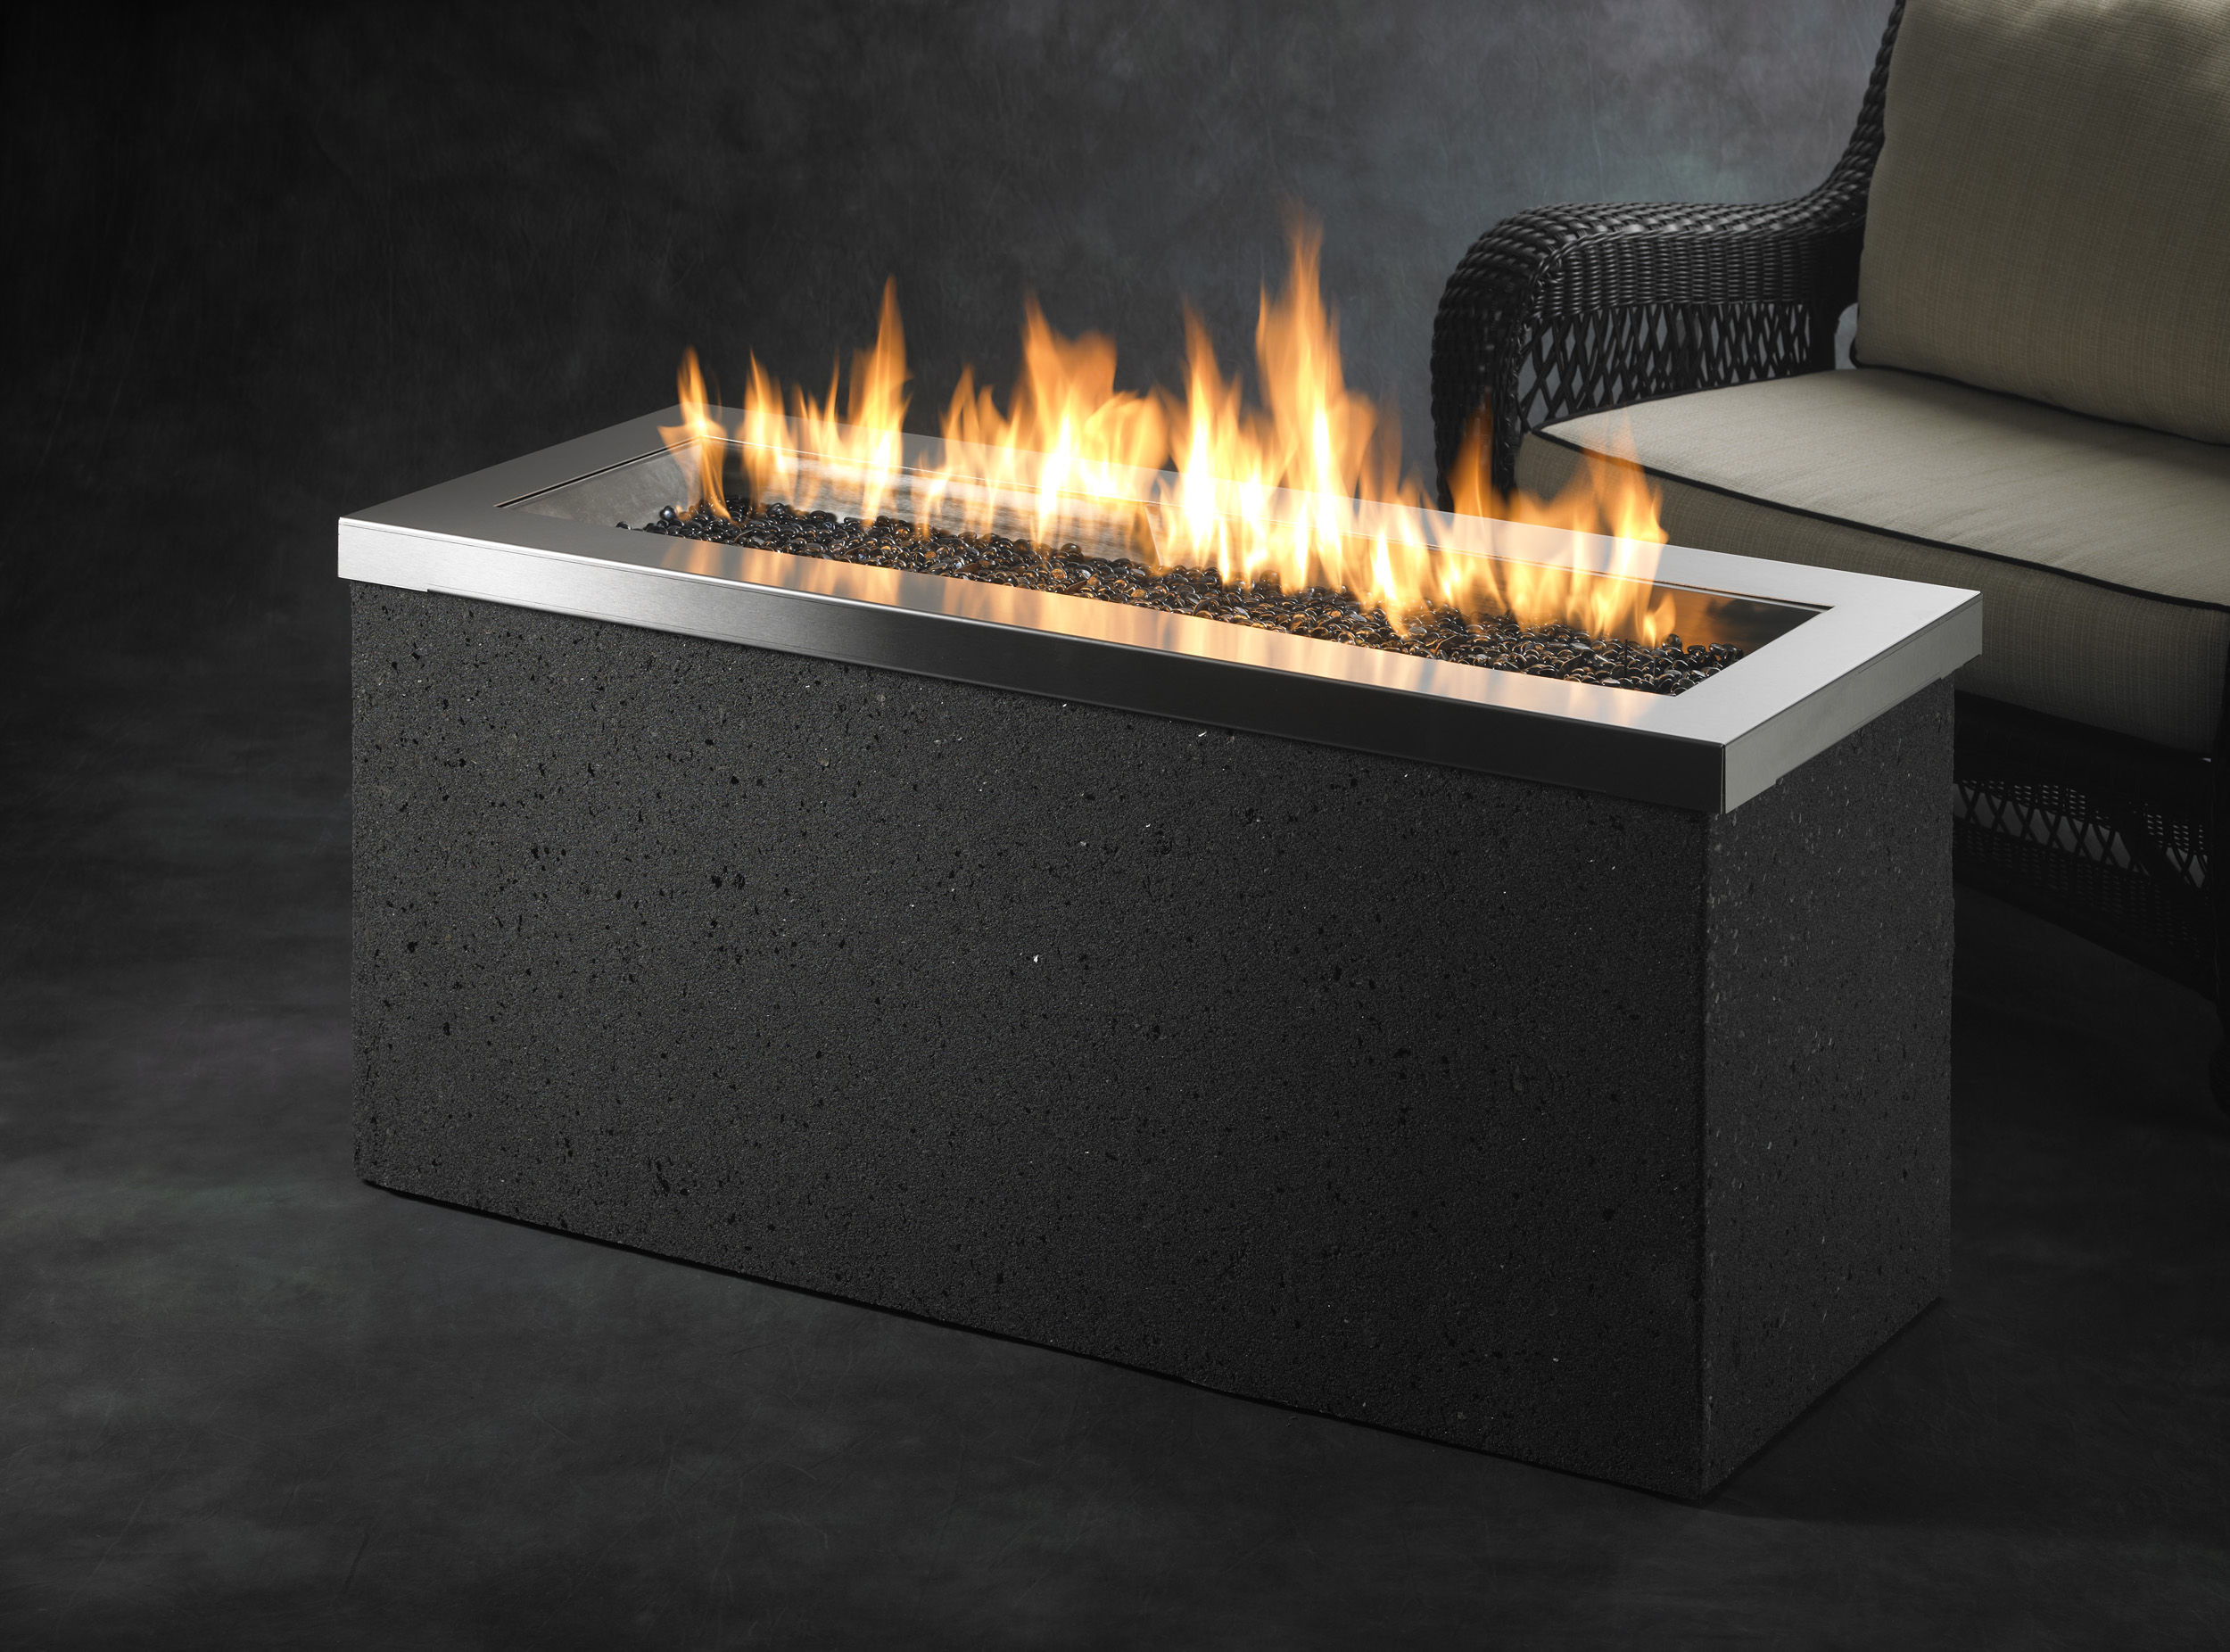 The Outdoor Greatroom 174 Company Adds 12 New Gas Fire Pit